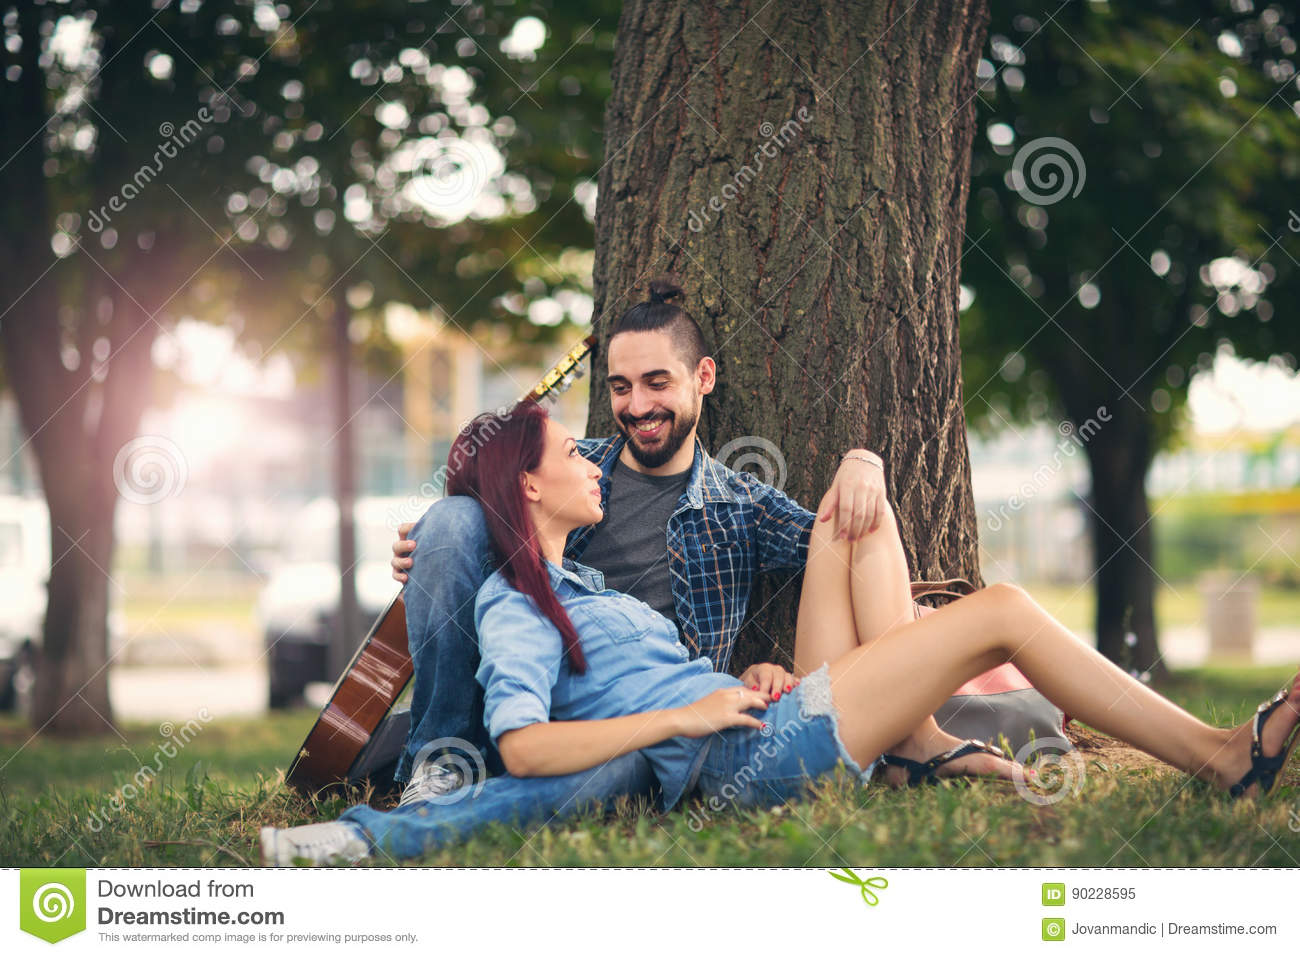 Sitting in a tree dating over 6ft dating